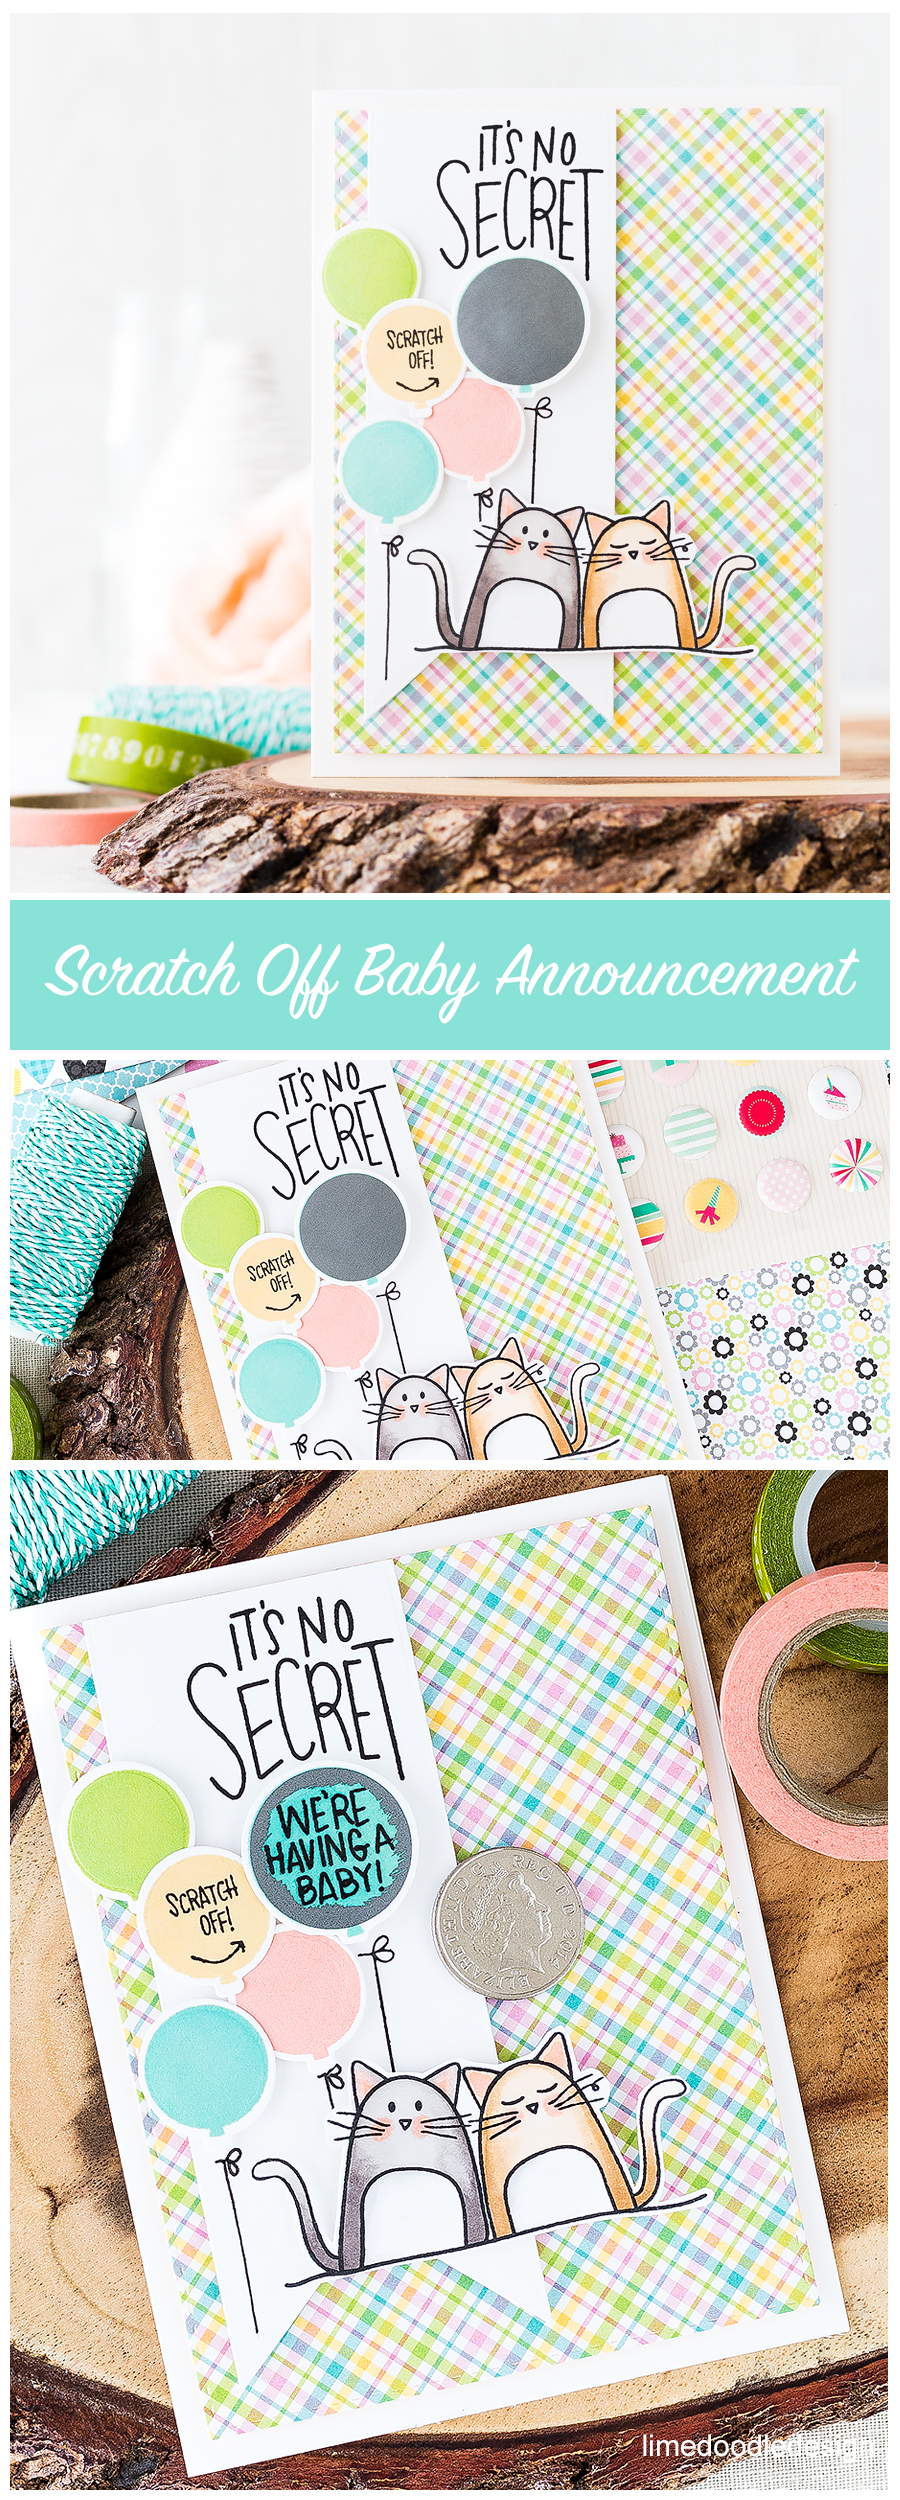 Baby announcement scratch off card. Find out more by clicking on the following link: https://limedoodledesign.com/2016/08/baby-announcement-my-first-scratch-off-card/